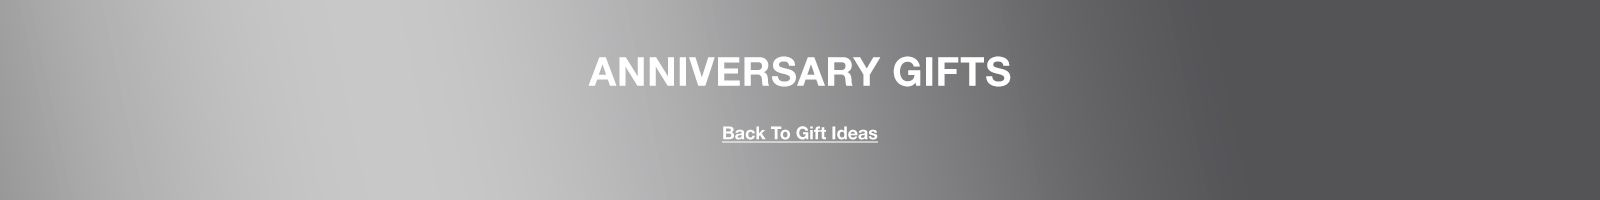 Anniversary Gifts, Back to Gift Ideas